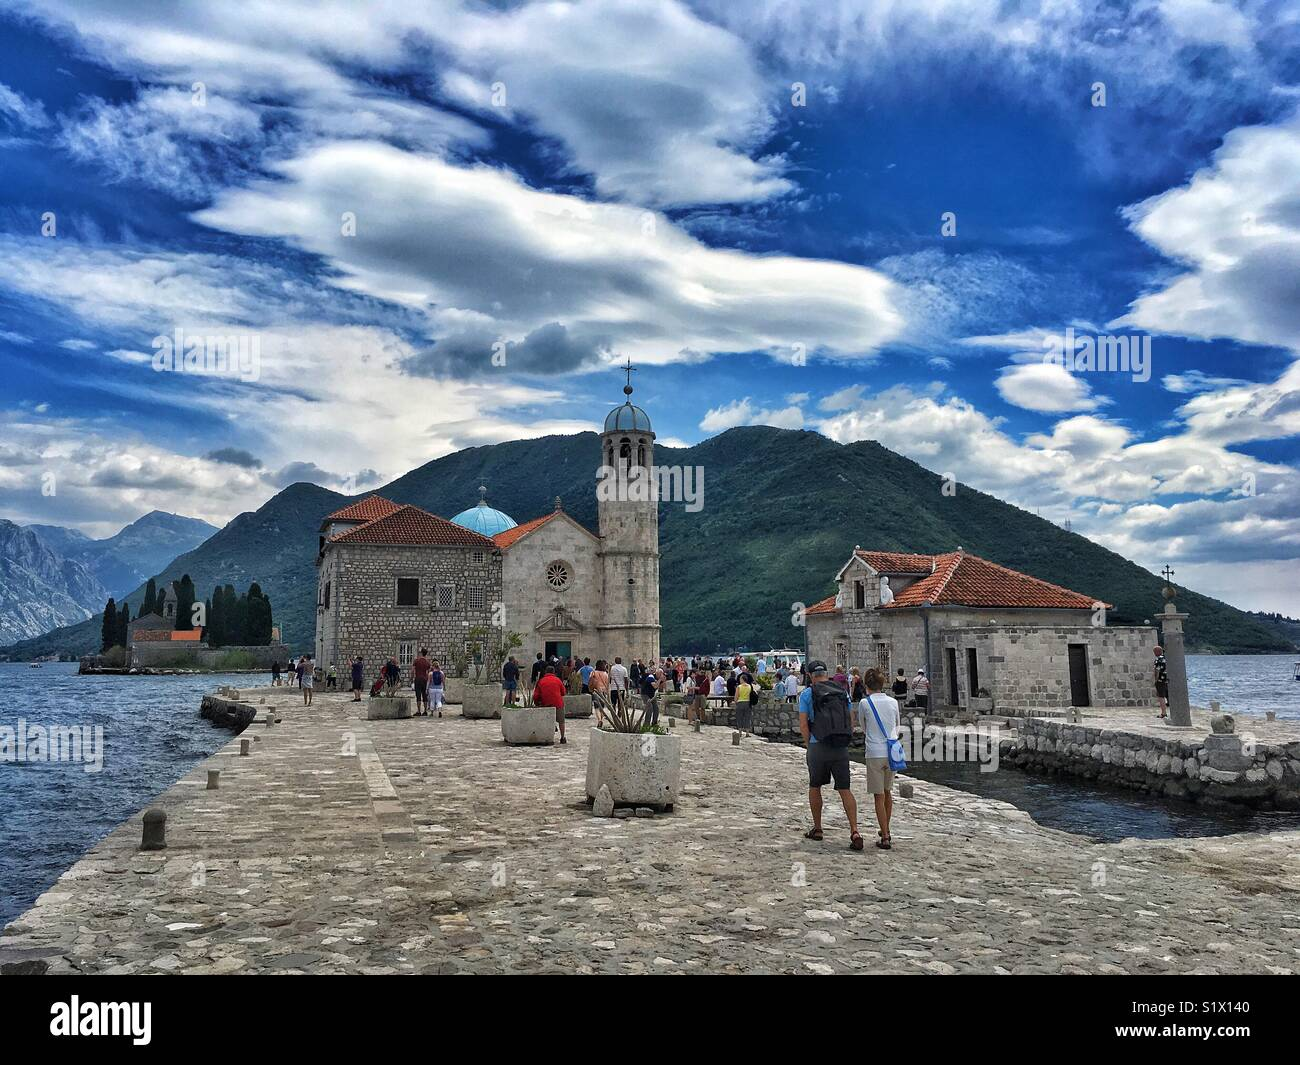 Tourists on a Our Lady of Rocks islet in Bay of Kotor, Montenegro Stock Photo